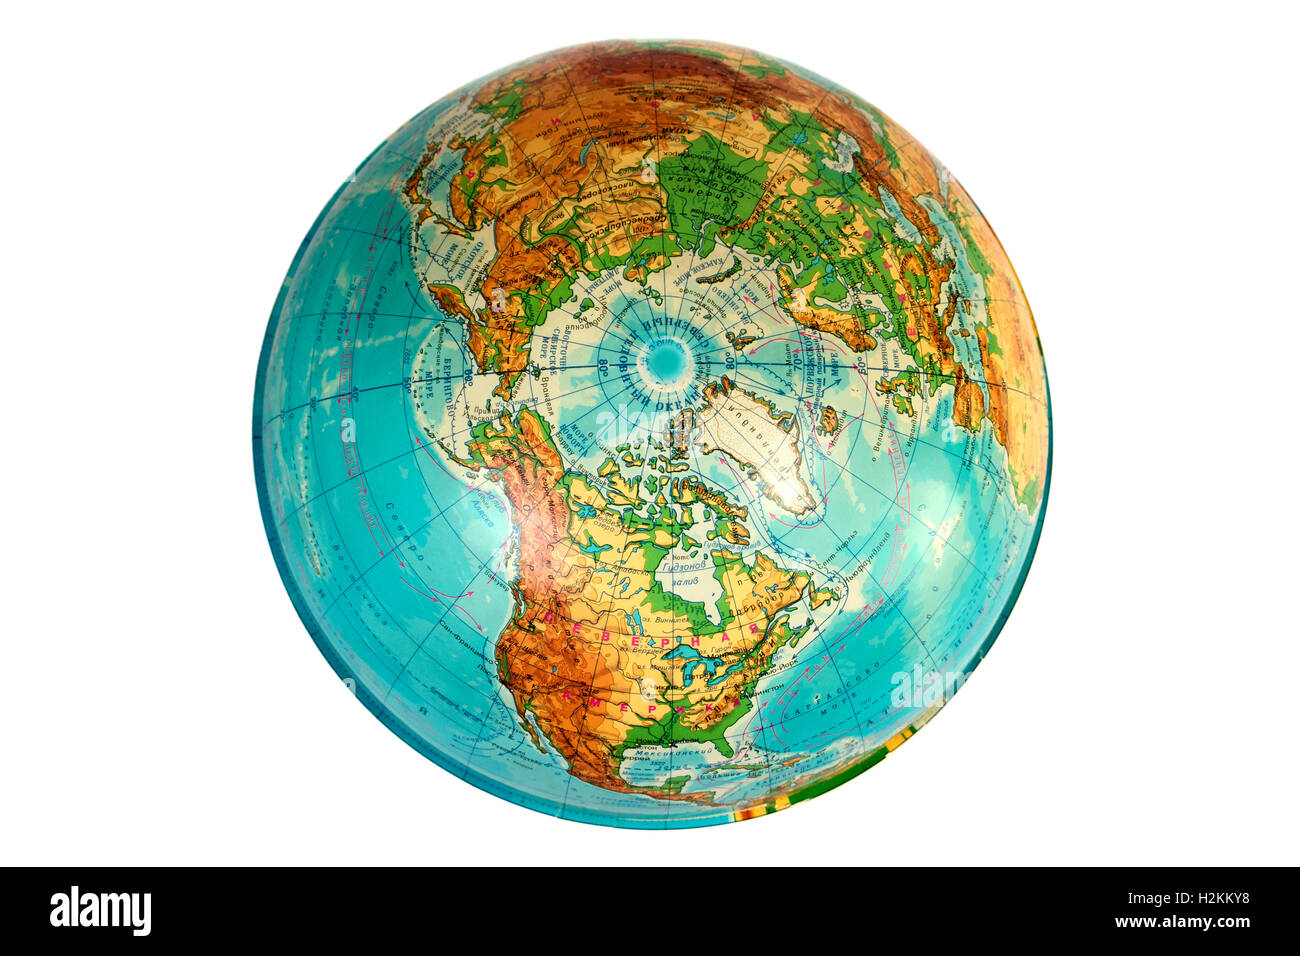 Globe view from north pole stock photos globe view from north pole globe in russian view from above the north pole stock image gumiabroncs Choice Image